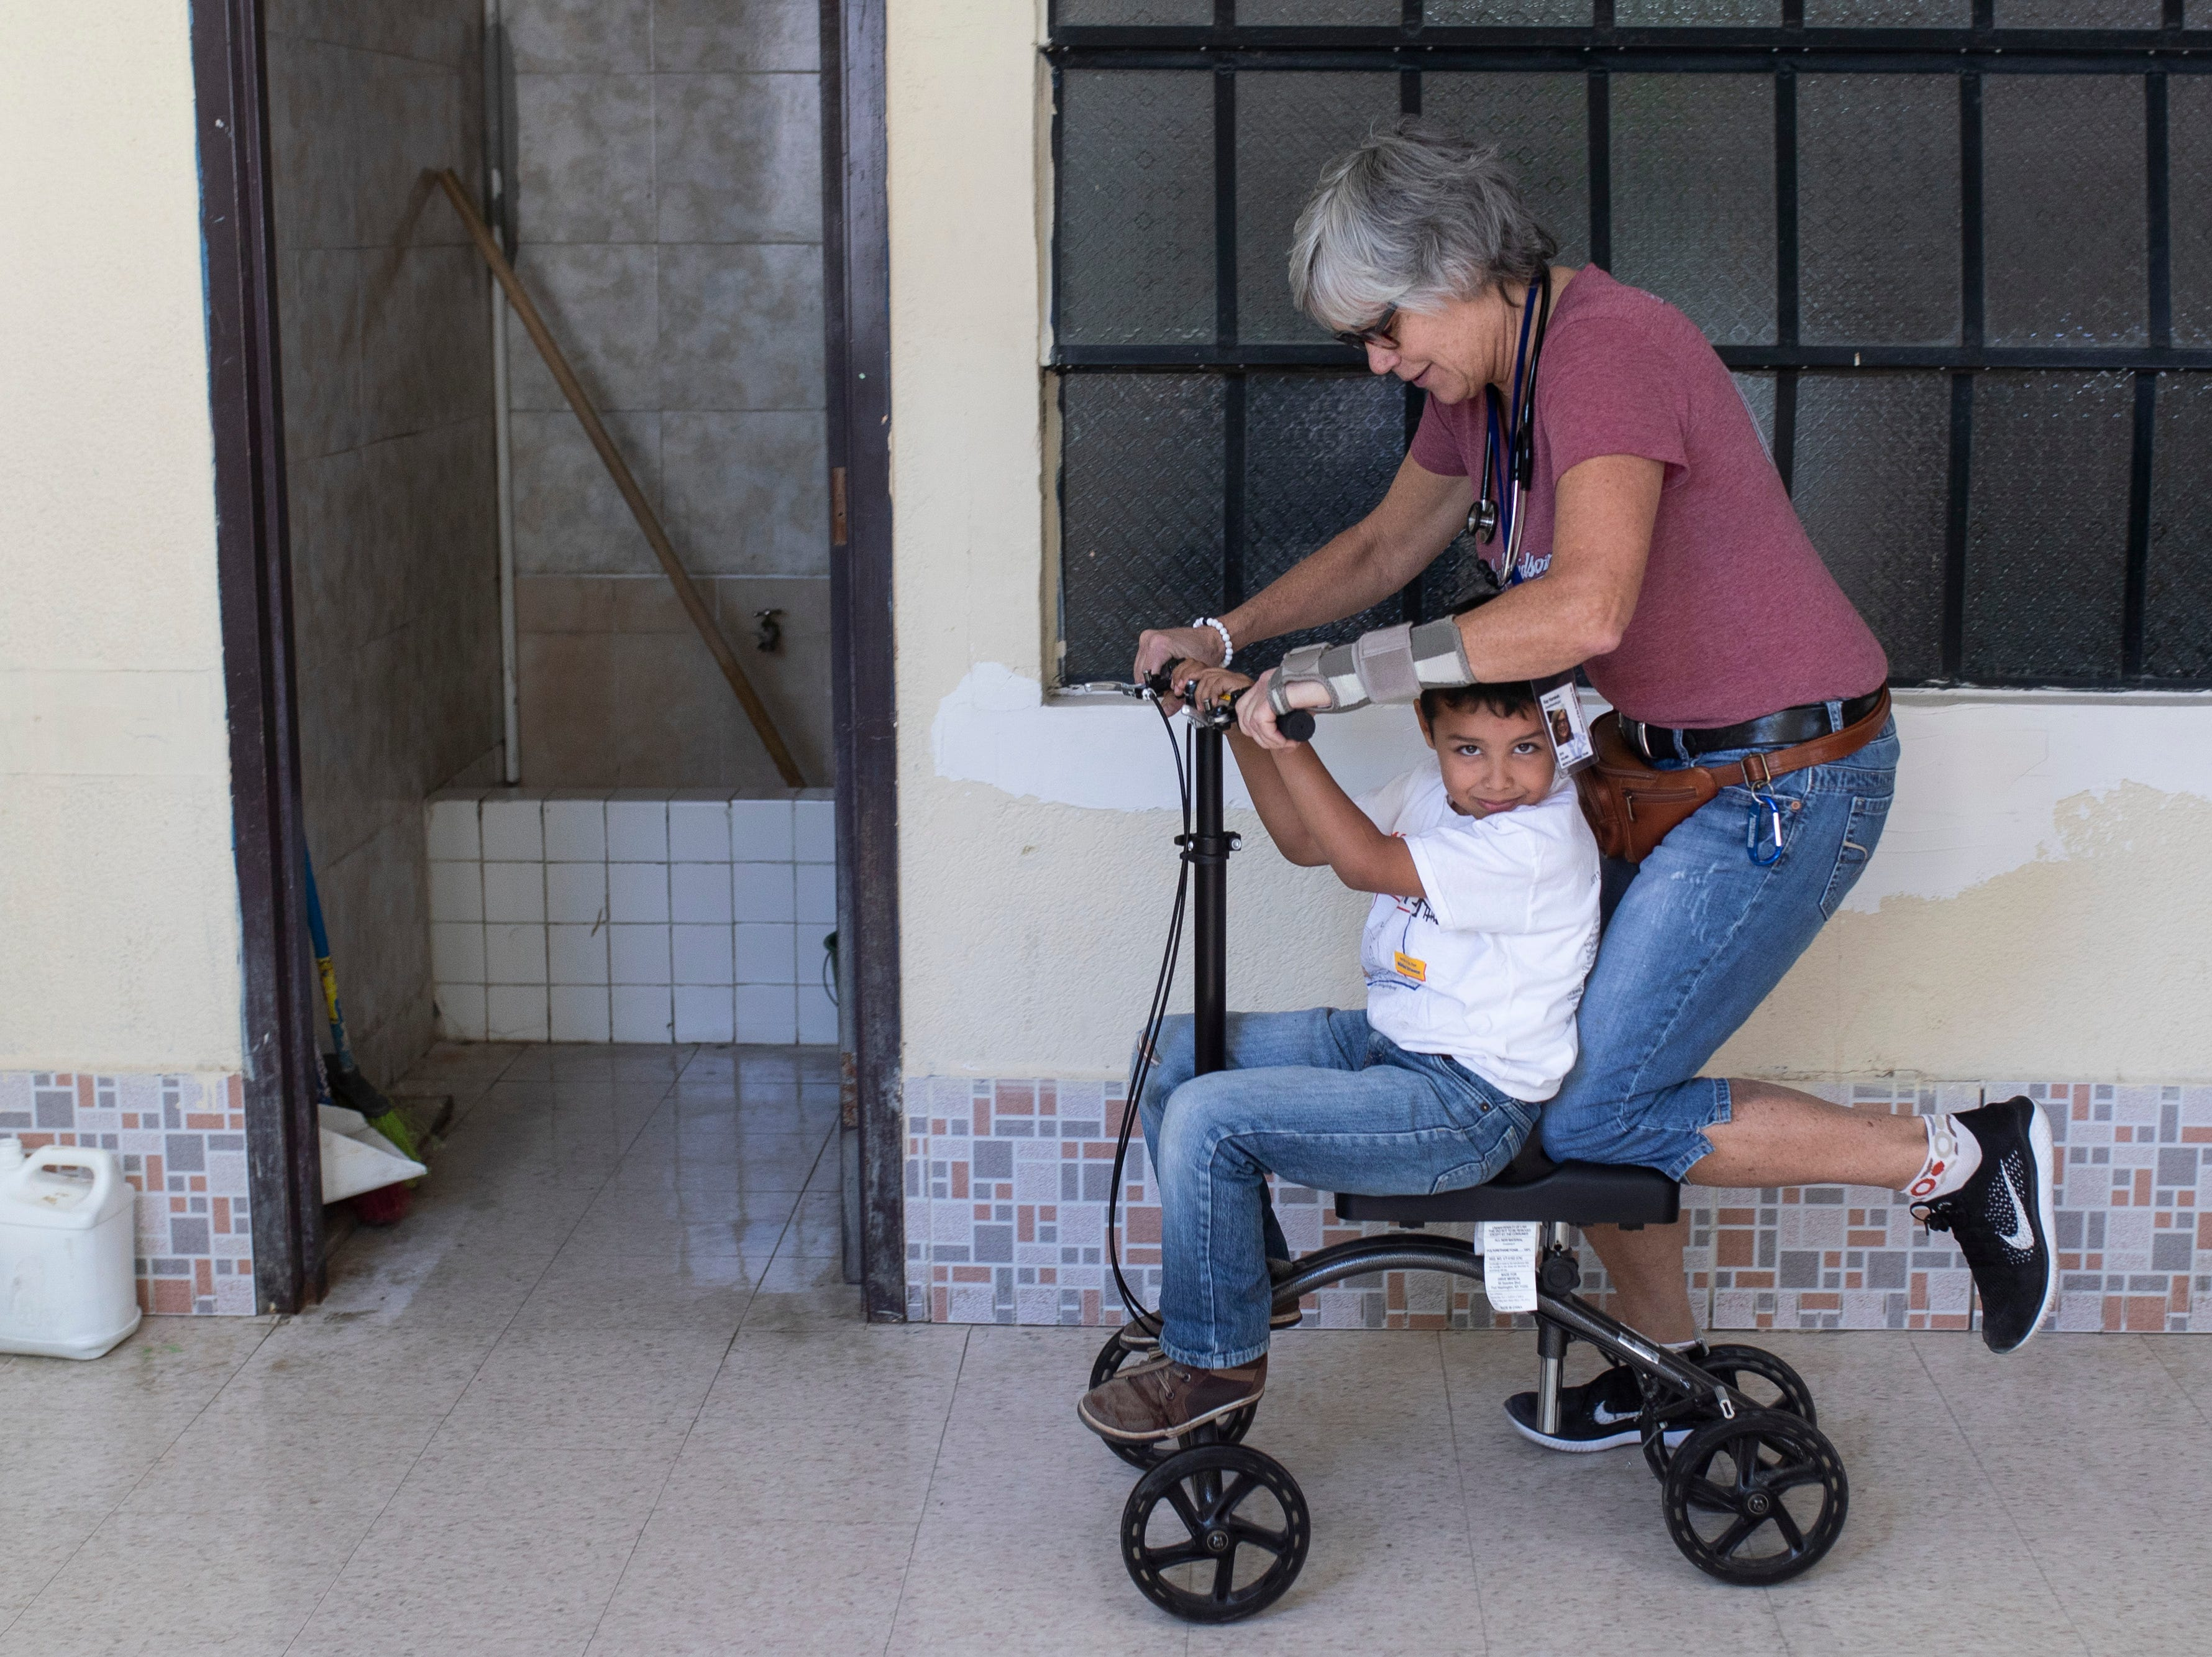 COTA vanesthesiologist Kay Beatty gives a patient a ride on her rehab scooter during the medical mission. Jan. 22, 2019